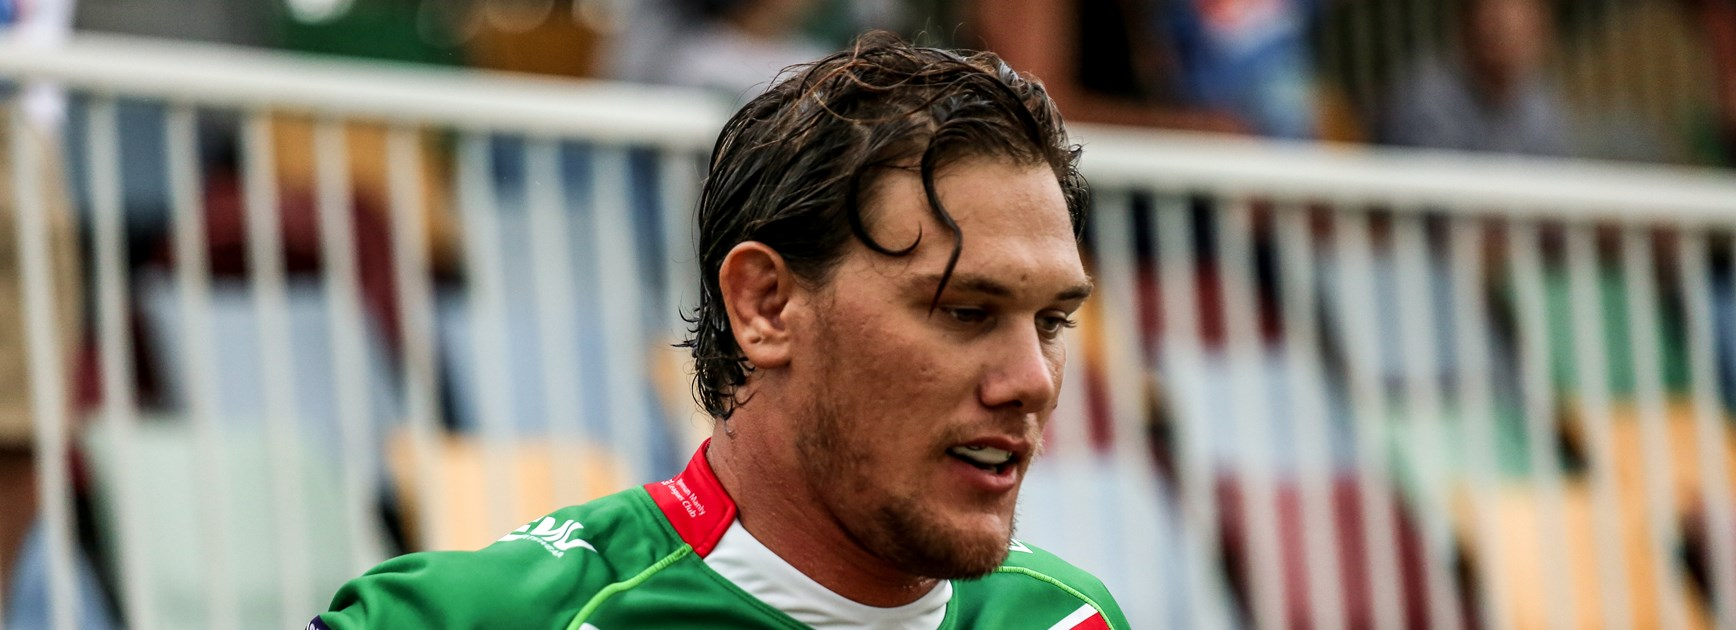 Souths-Logan recruit Frei to add Roosters ethos